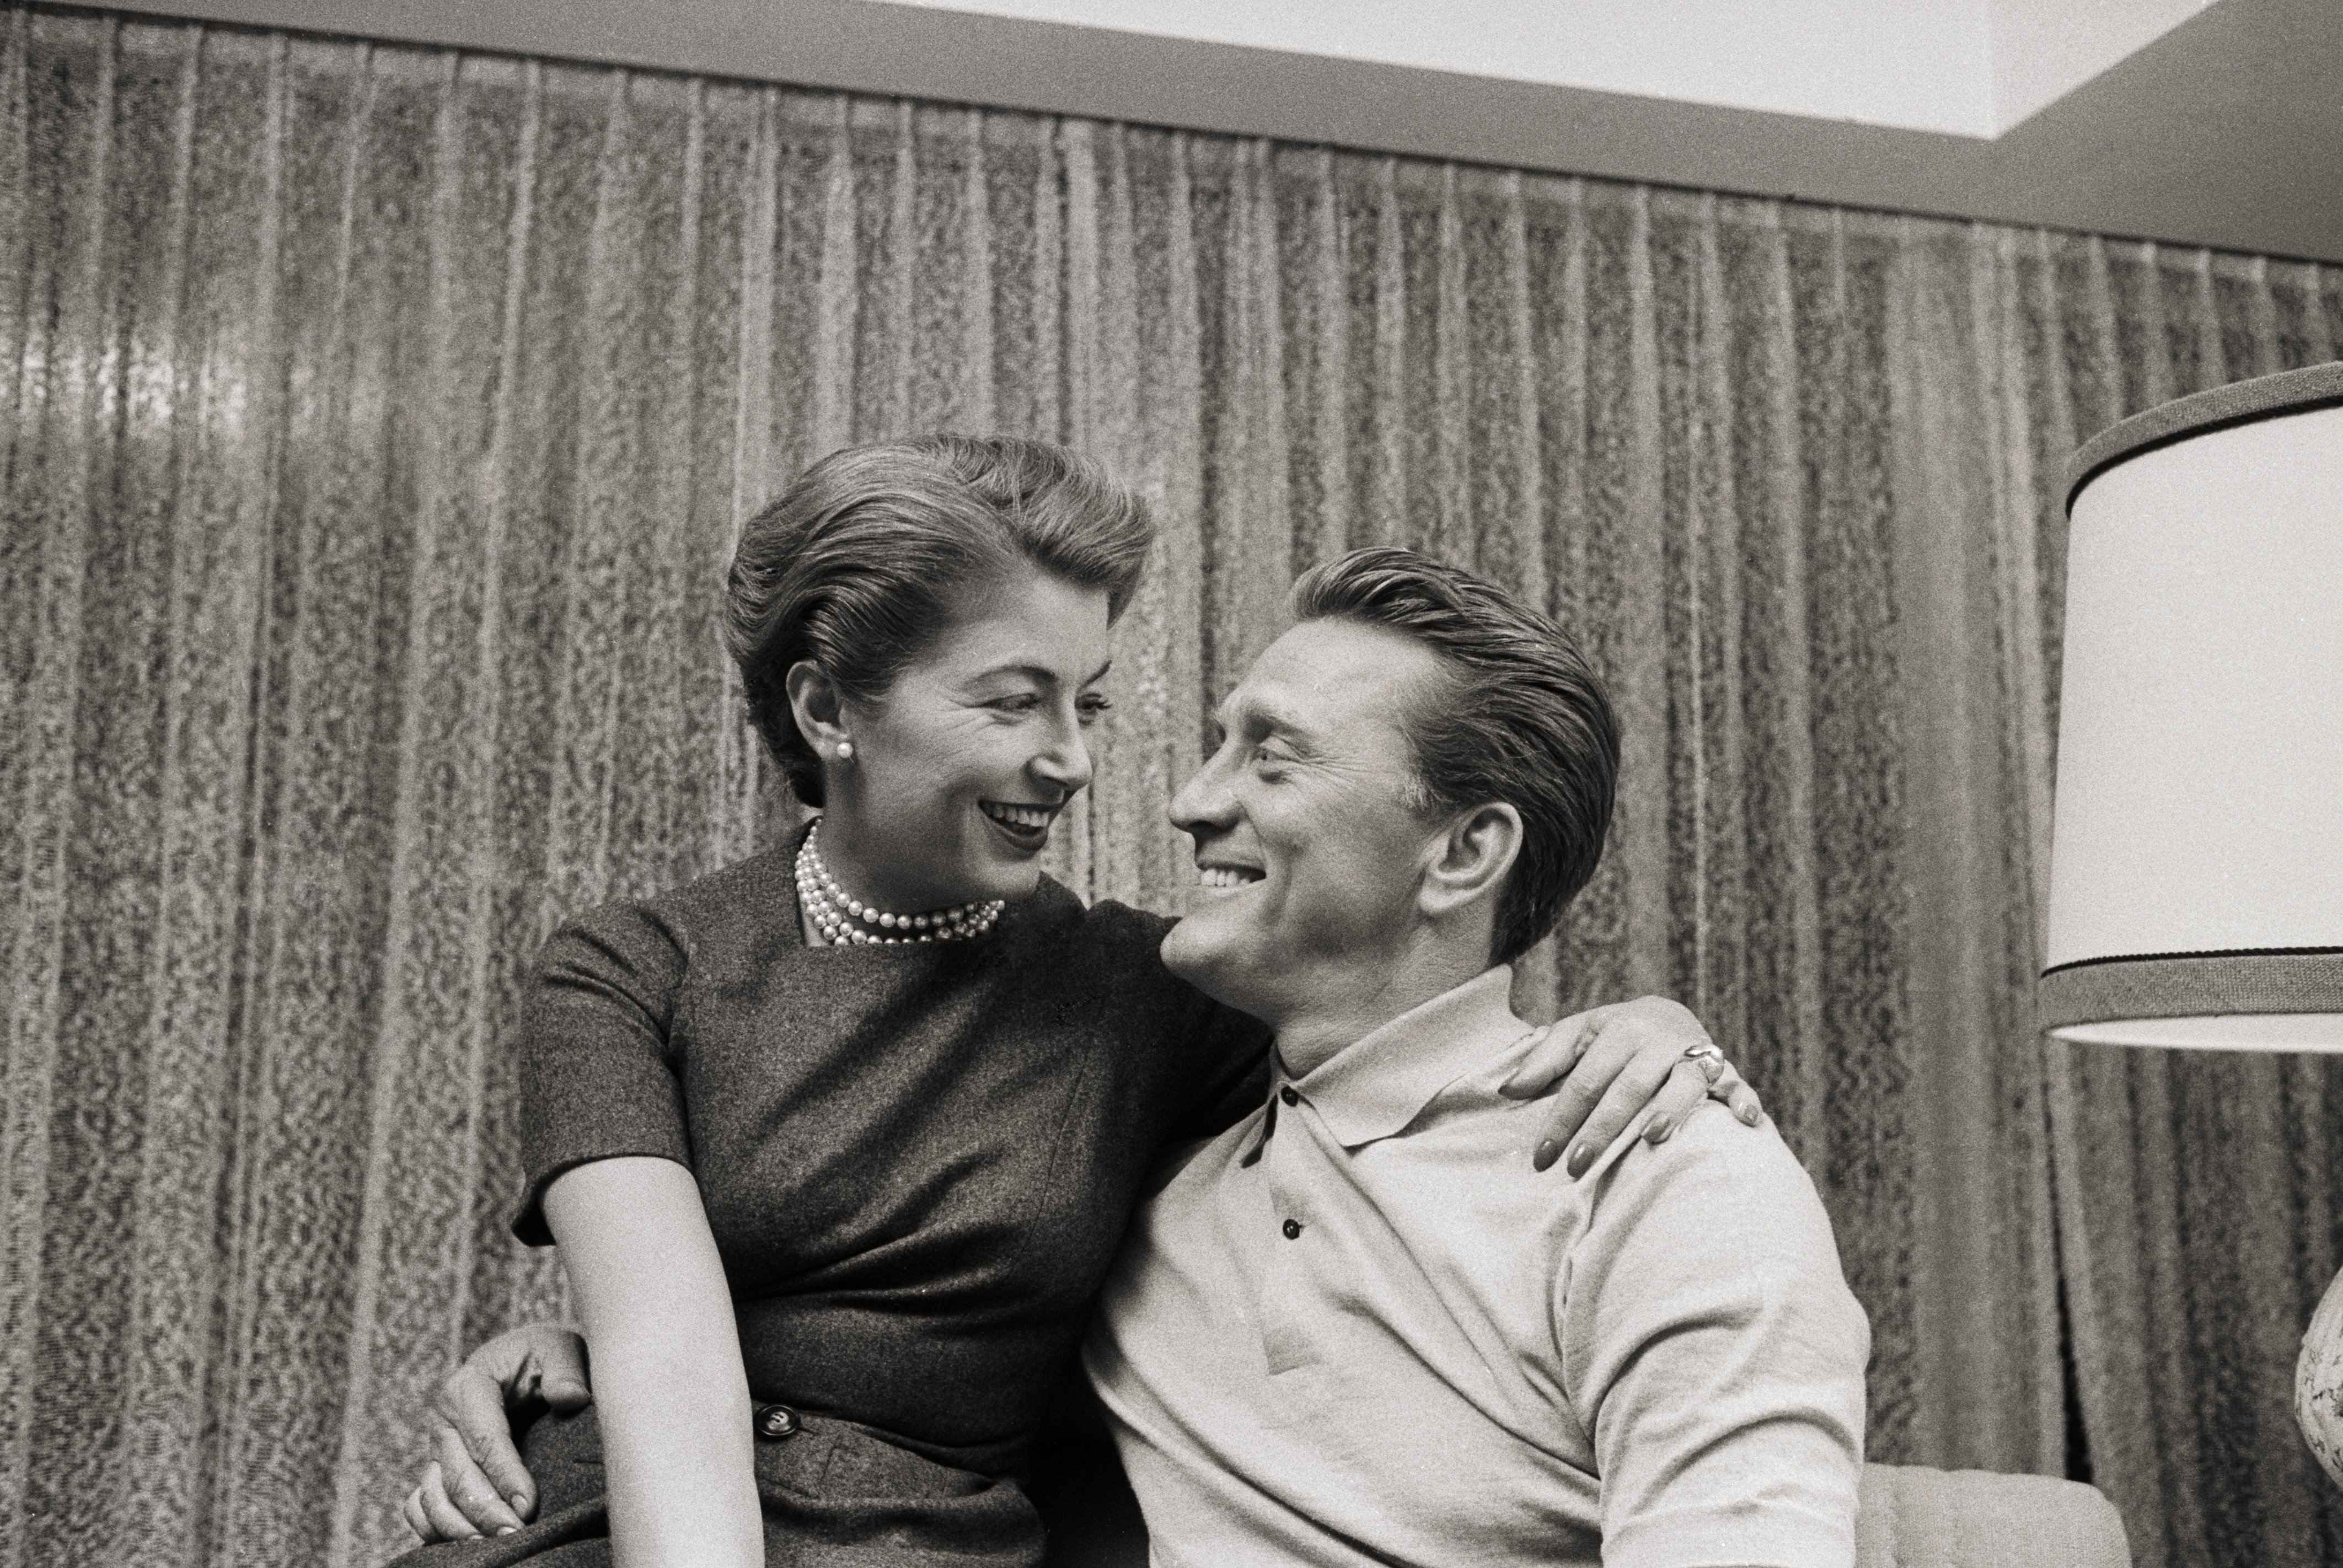 Kirk Douglas and his spouse Anne Douglas gaze at each other while smiling following his nomination for an Academy Award on February 18 | Photo: Getty Images